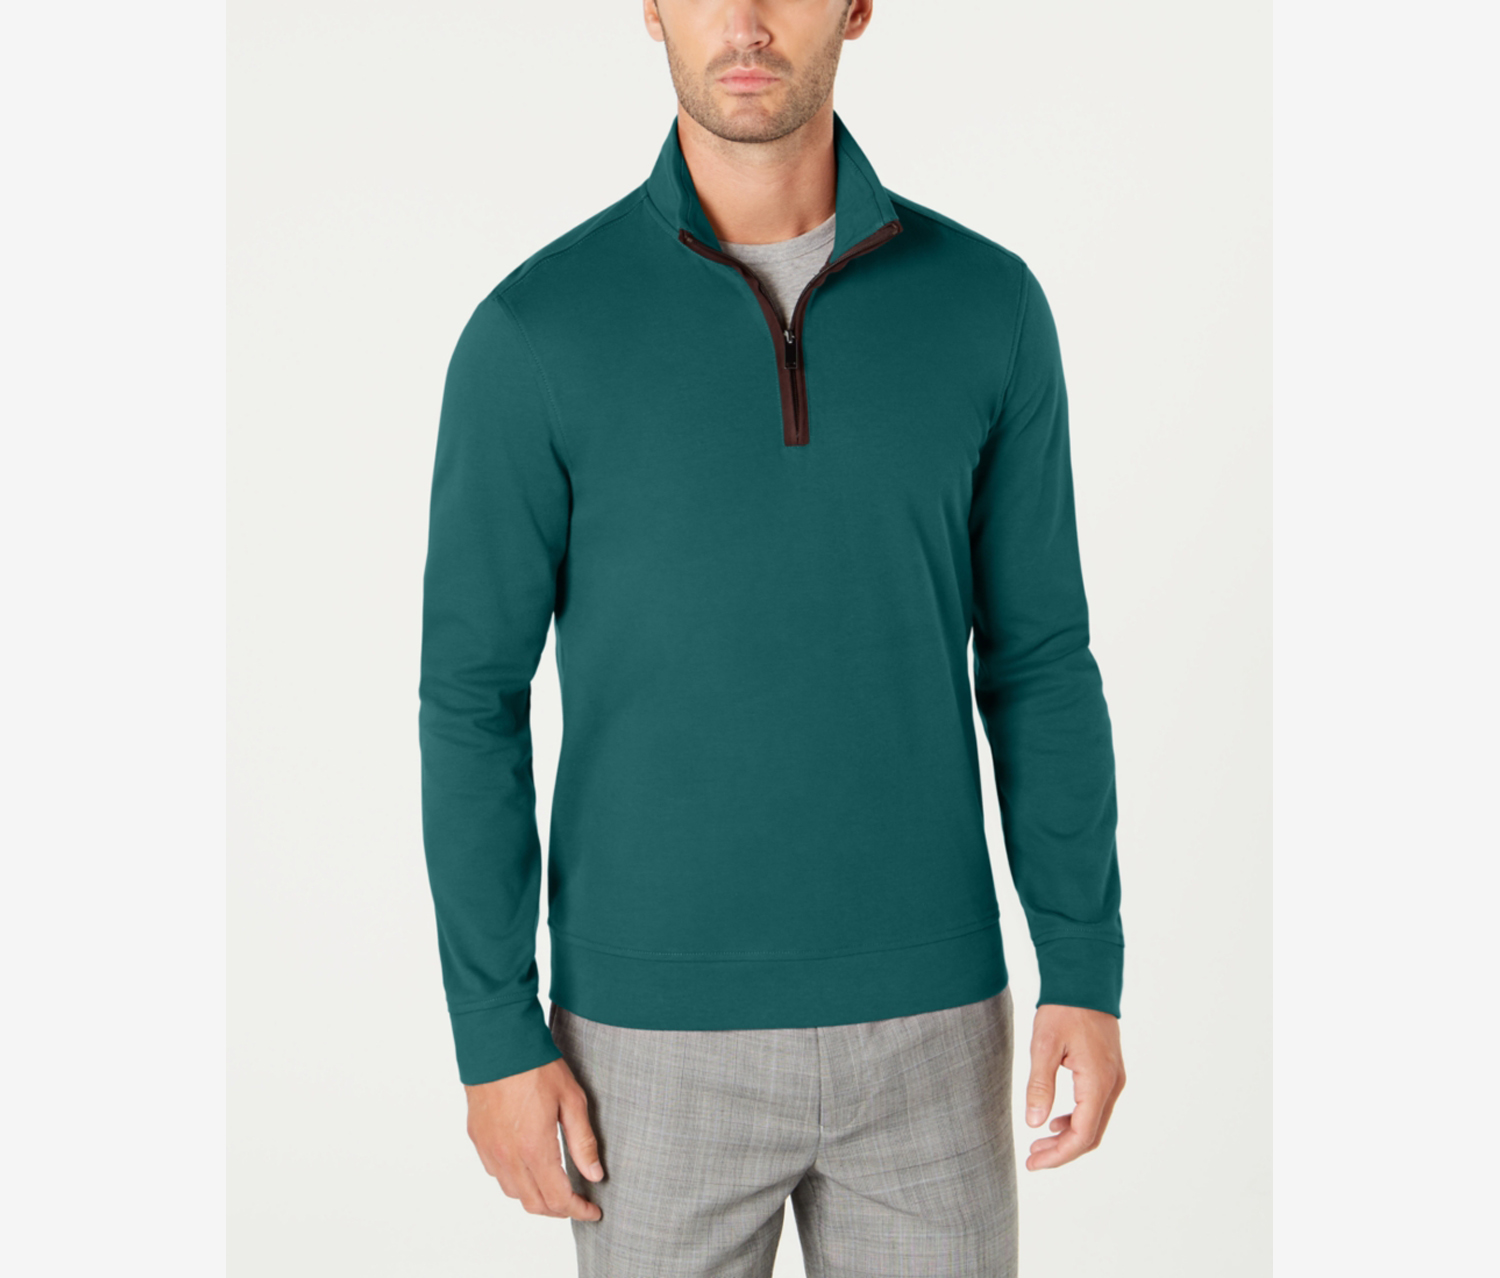 Men's Piped 1/4-Zip Sweater, Pacific